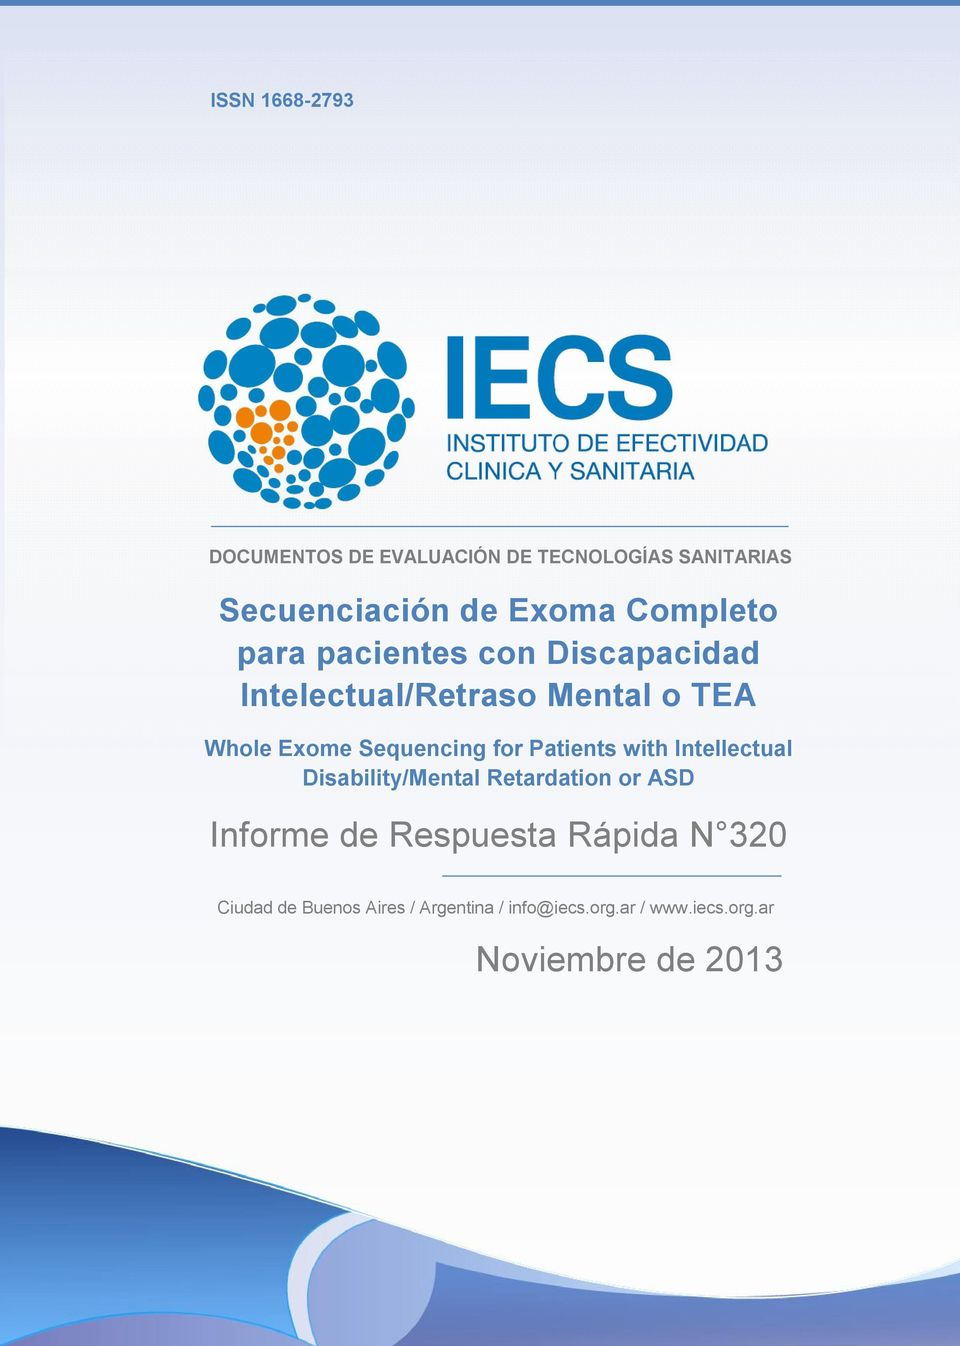 Sequencing for Patients with Intellectual Disability/Mental Retardation or ASD Informe de